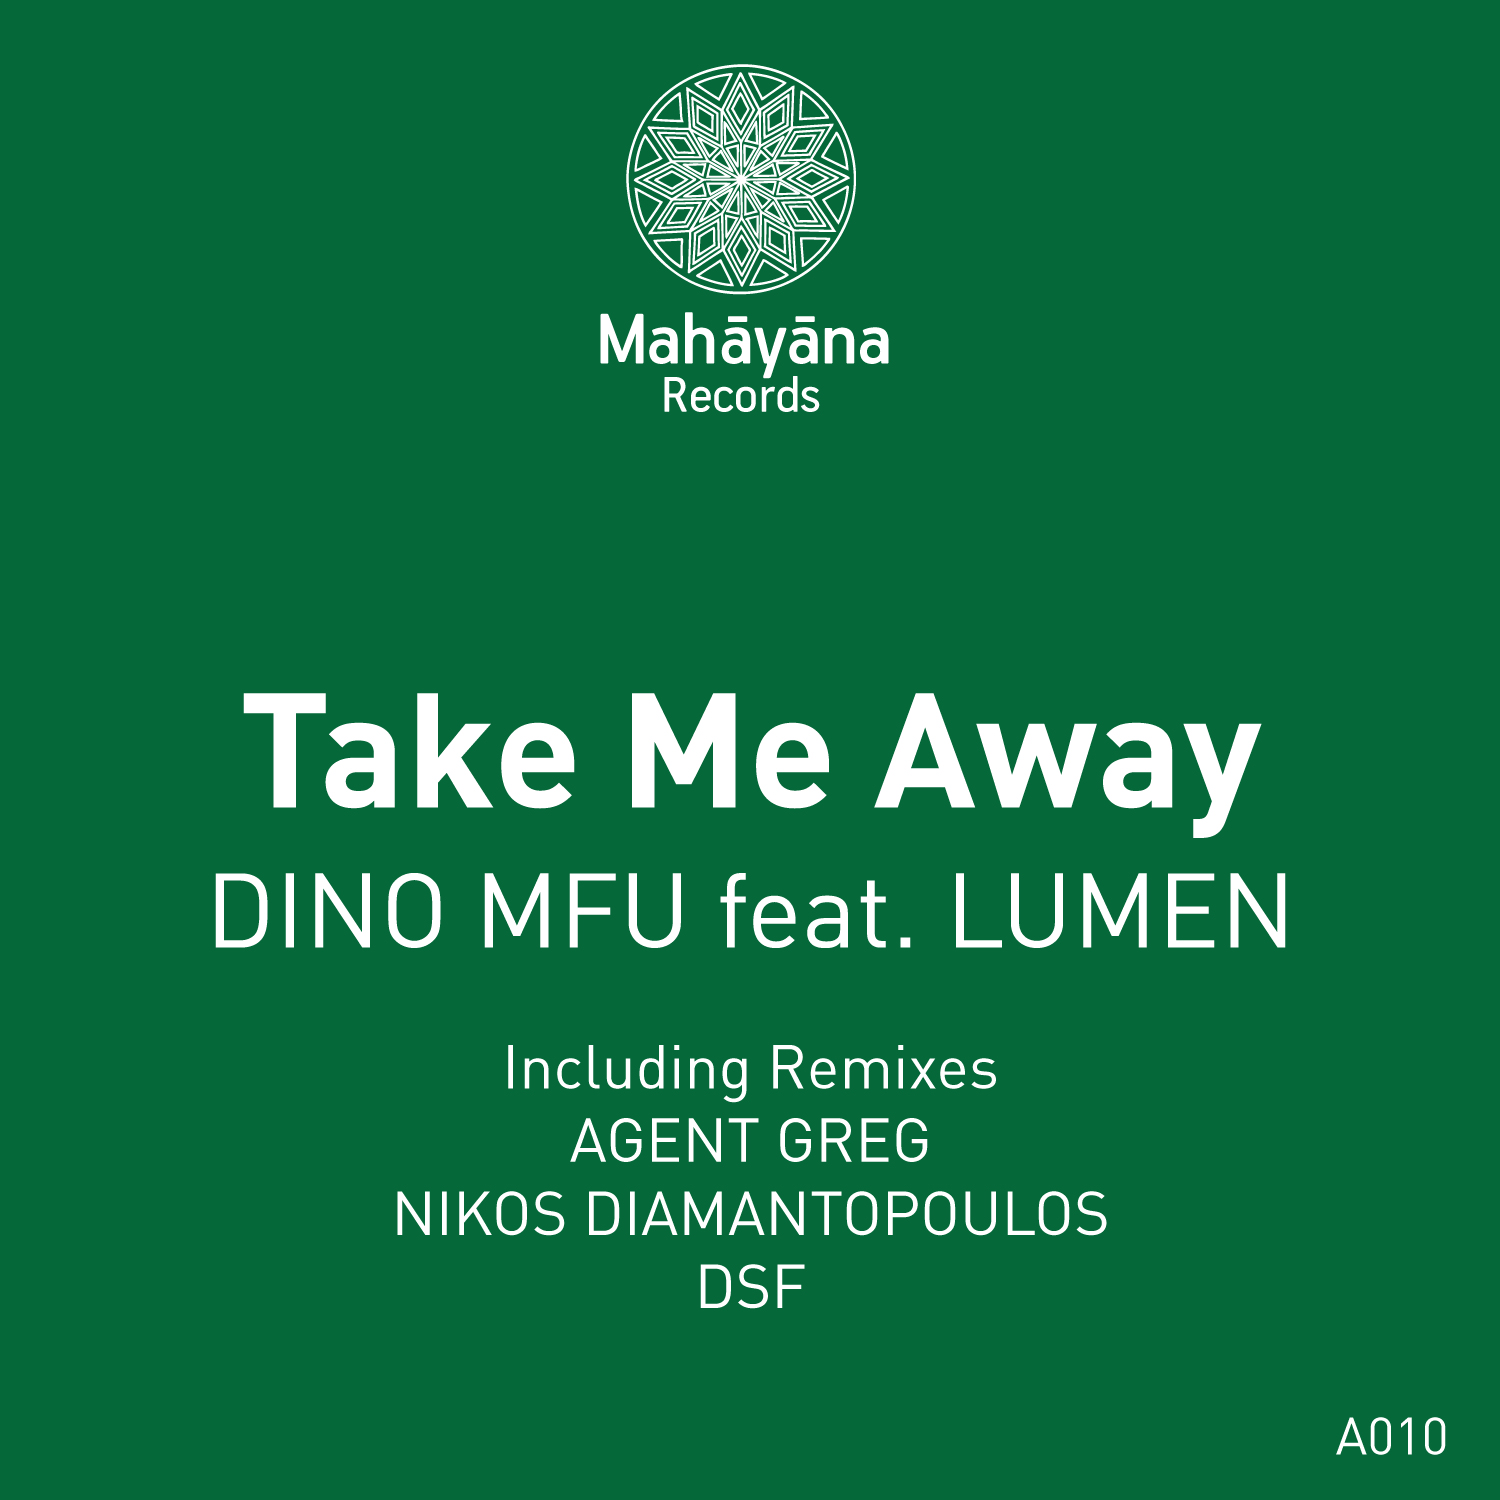 Dino MFU feat. Lumen – Take Me Away (Agent Greg Remix)